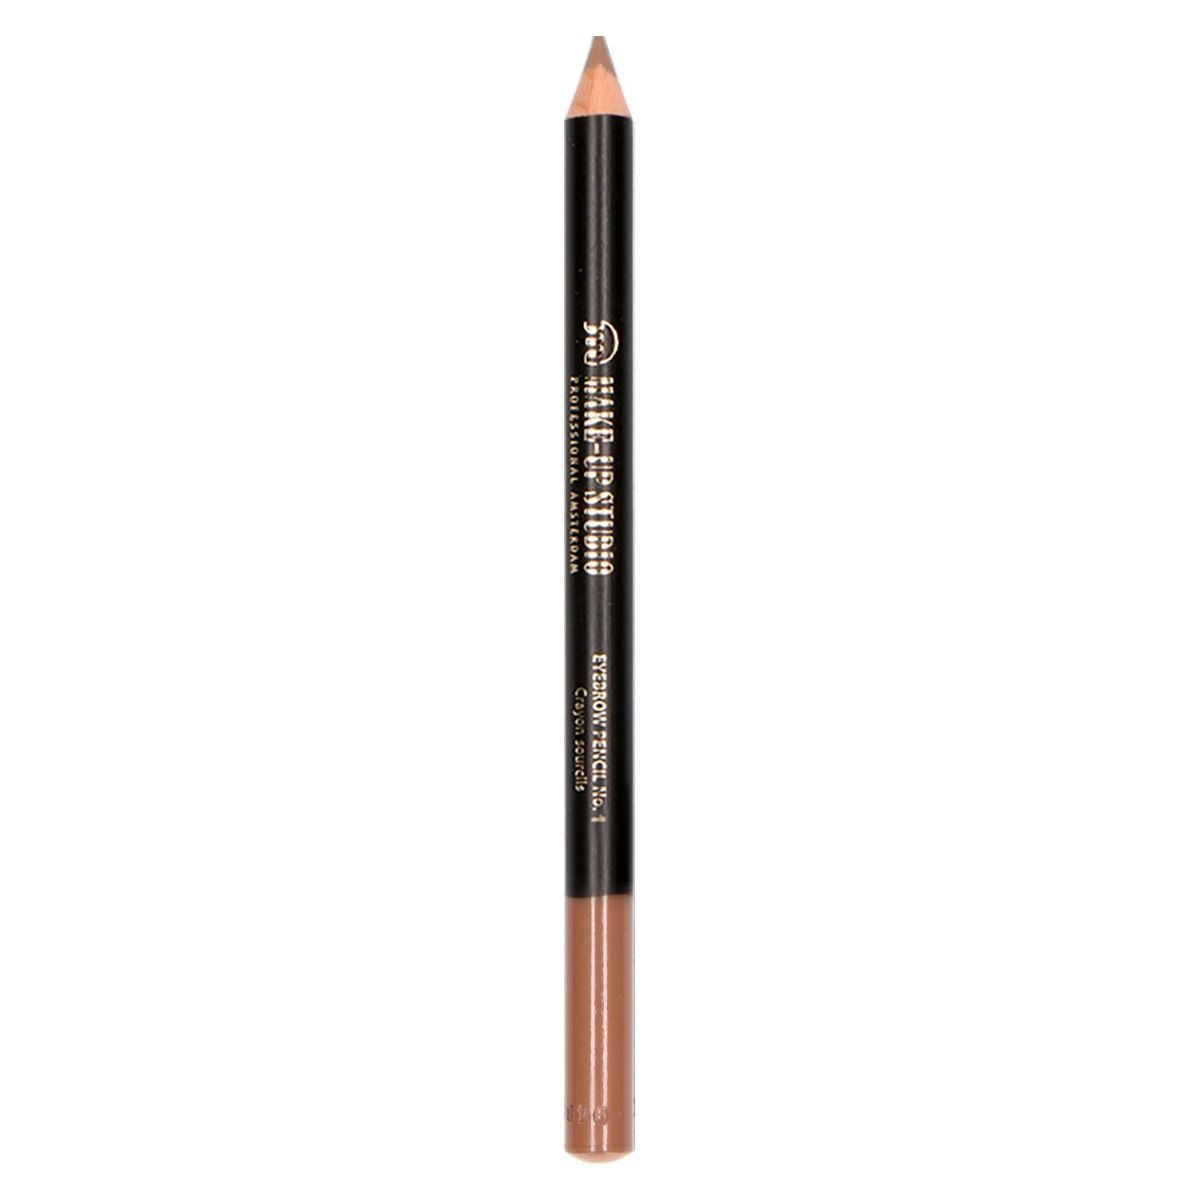 Make-up studio Pencil Eyebrow